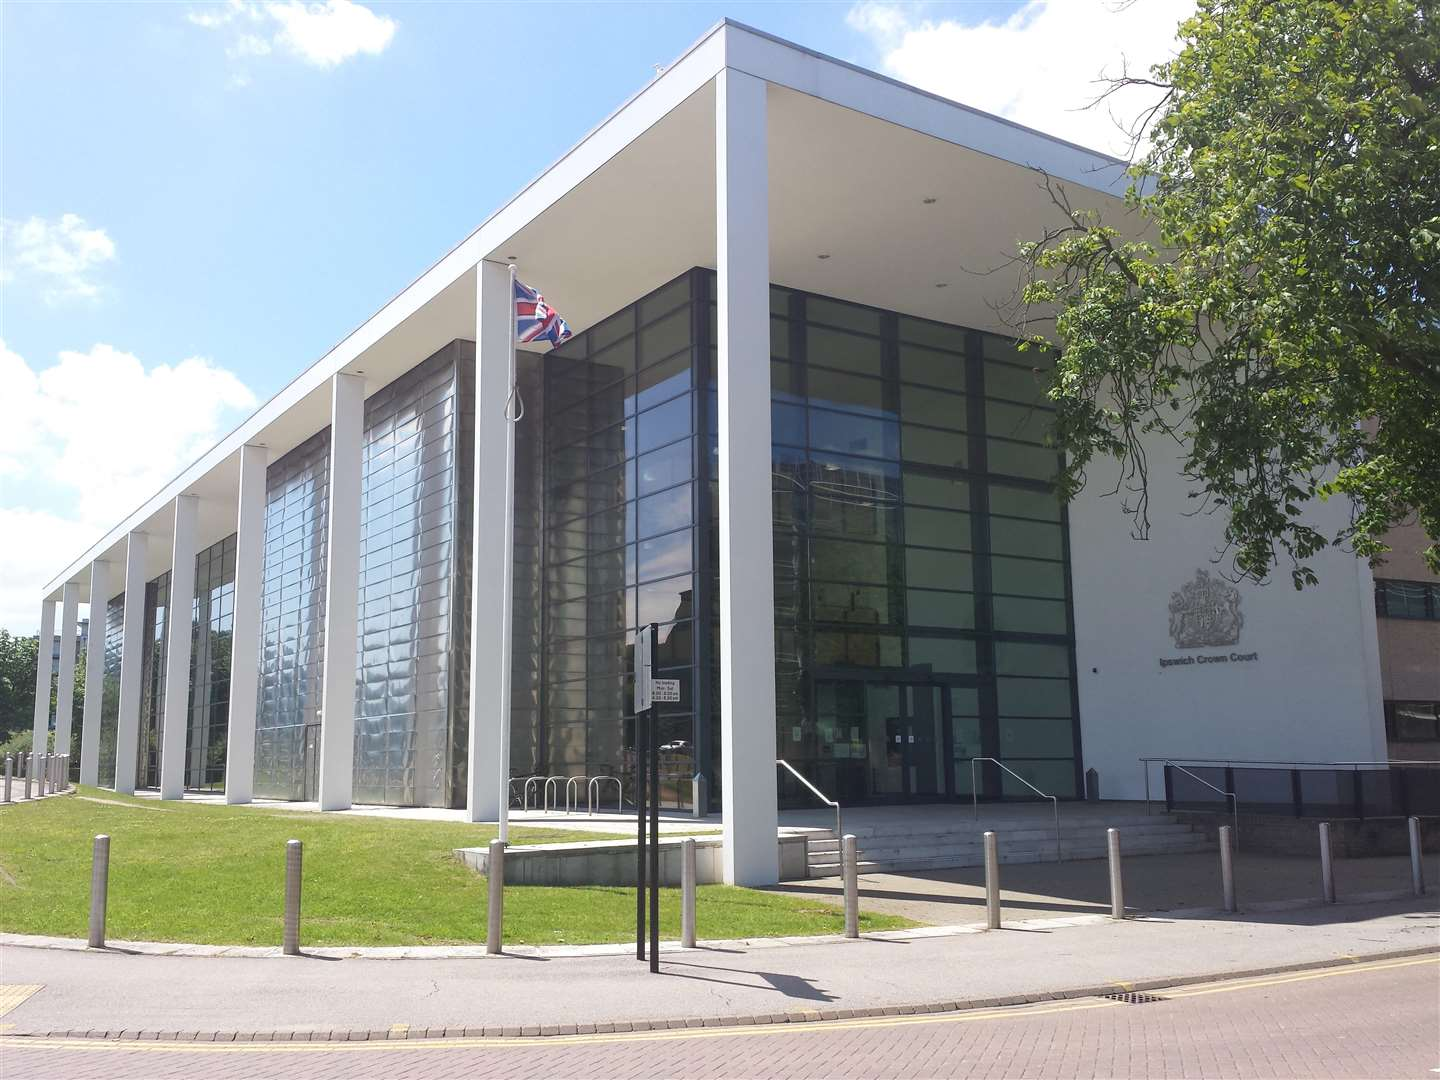 Ipswich Crown Court, where Iain Dunn was sentenced today.